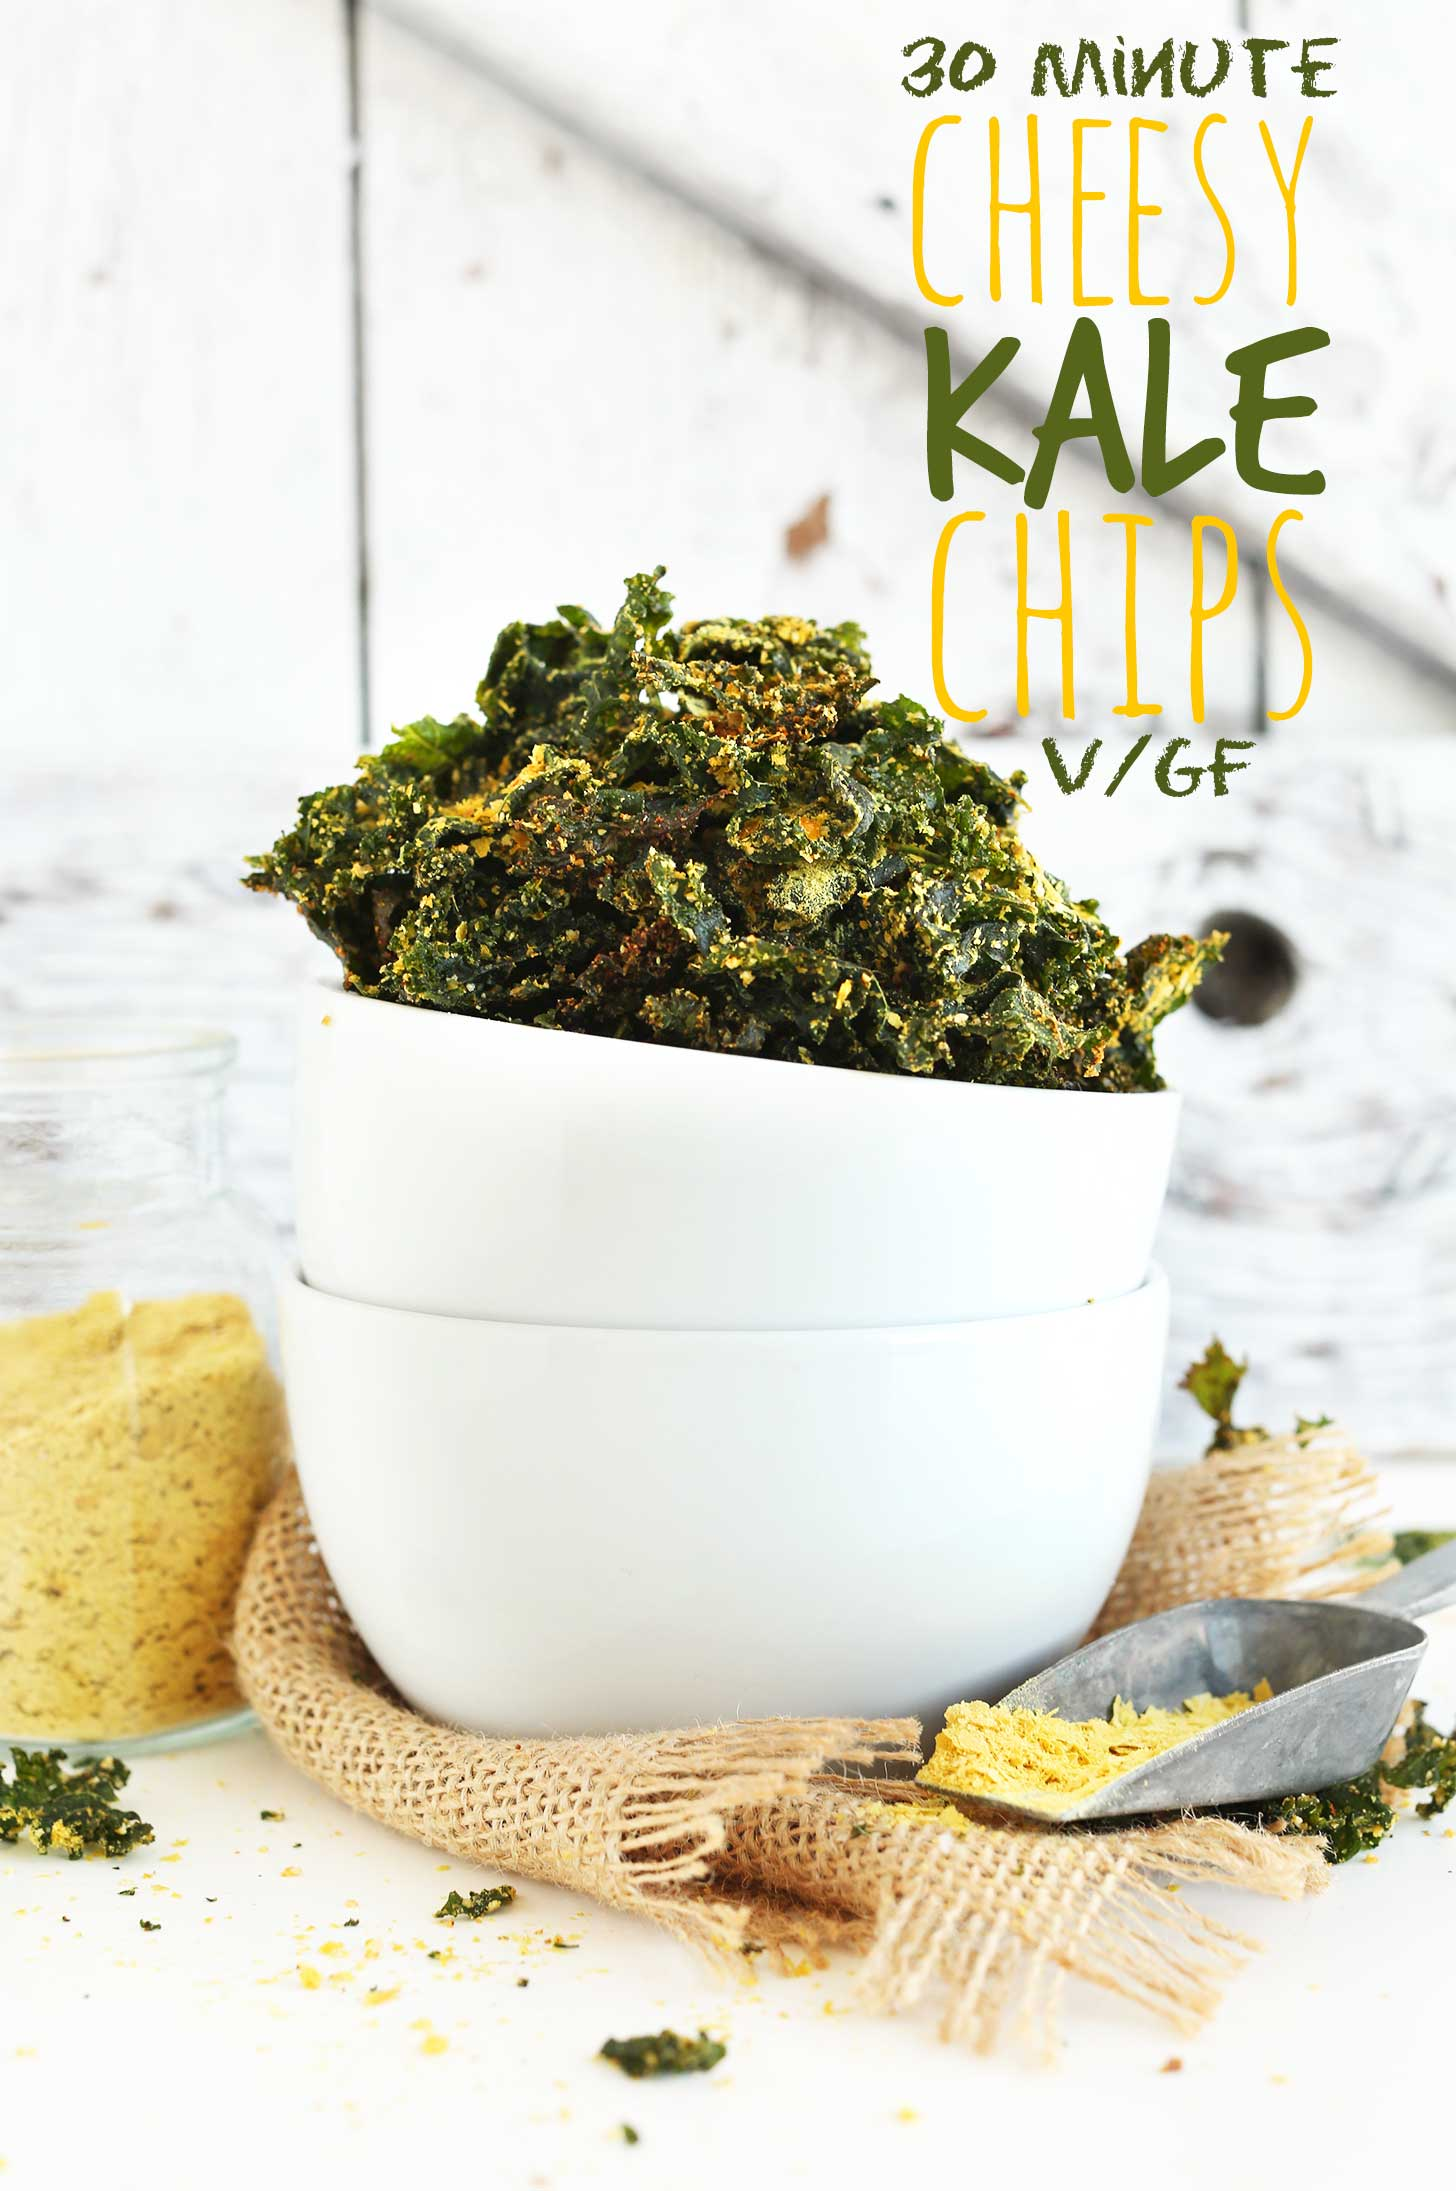 Bowl of delicious gluten-free vegan Cheesy Kale Chips